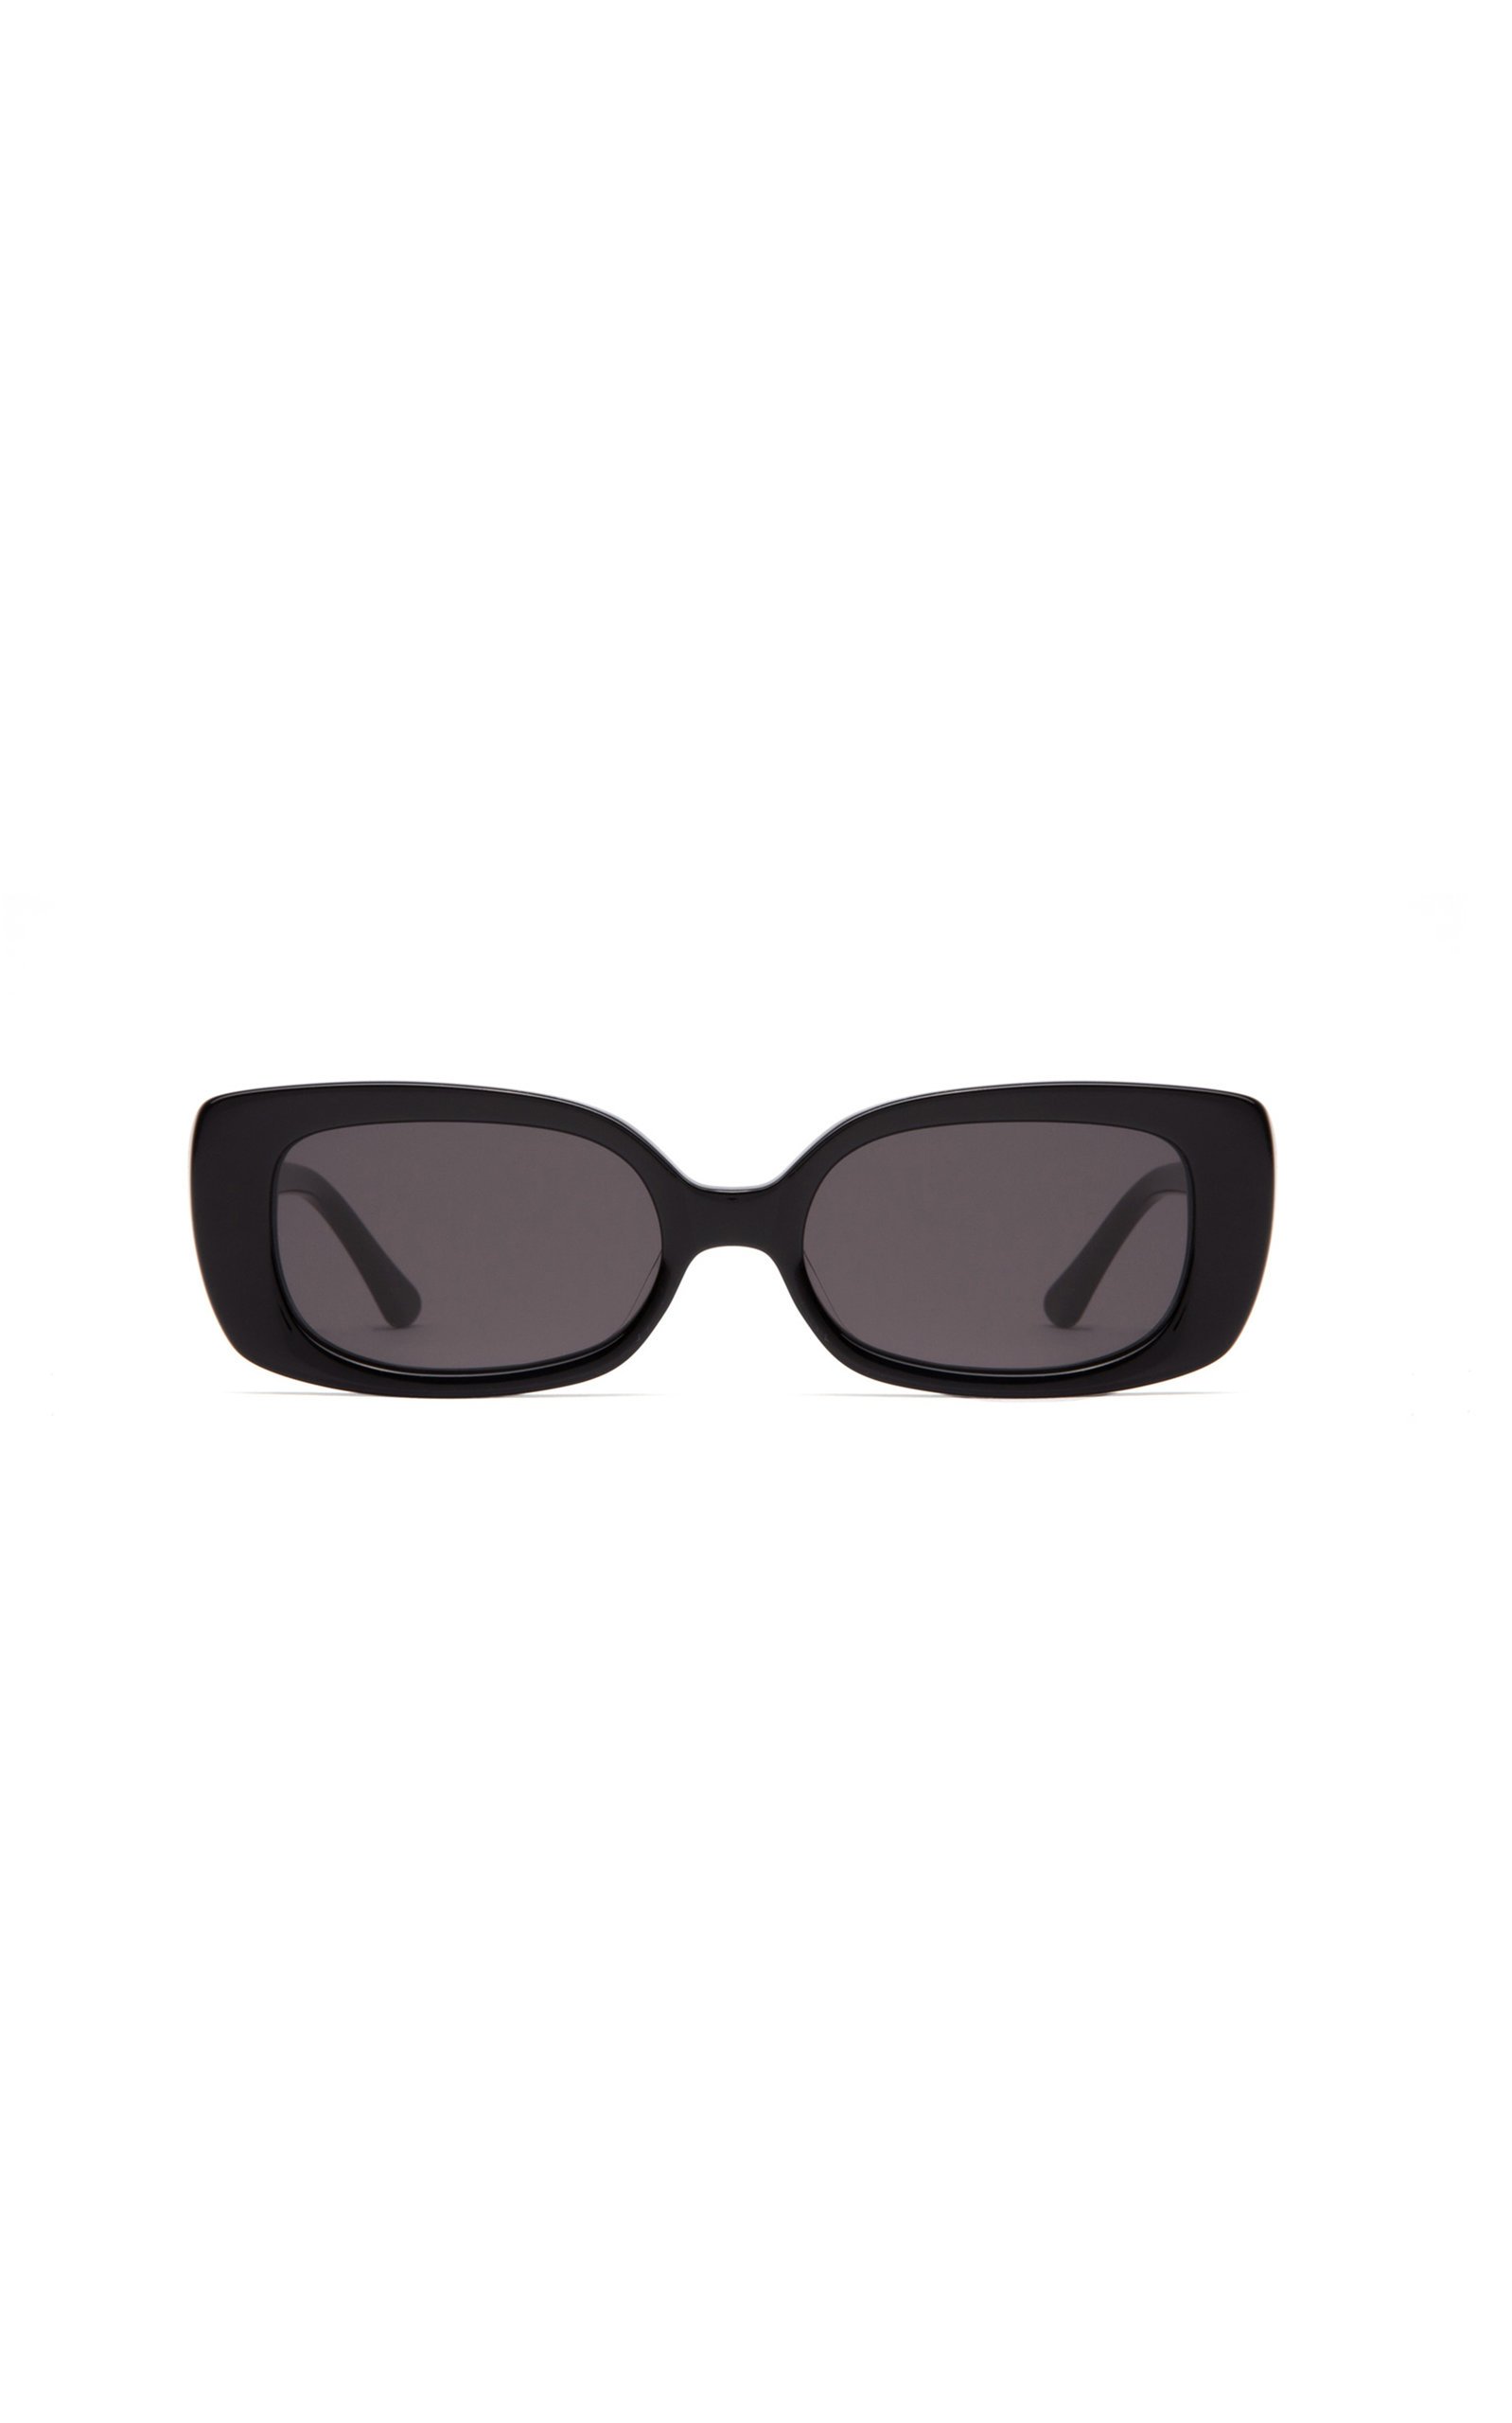 Square-Frame Sunglasses by Zou Bisou, available on modaoperandi.com for $190 Kendall Jenner Sunglasses Exact Product